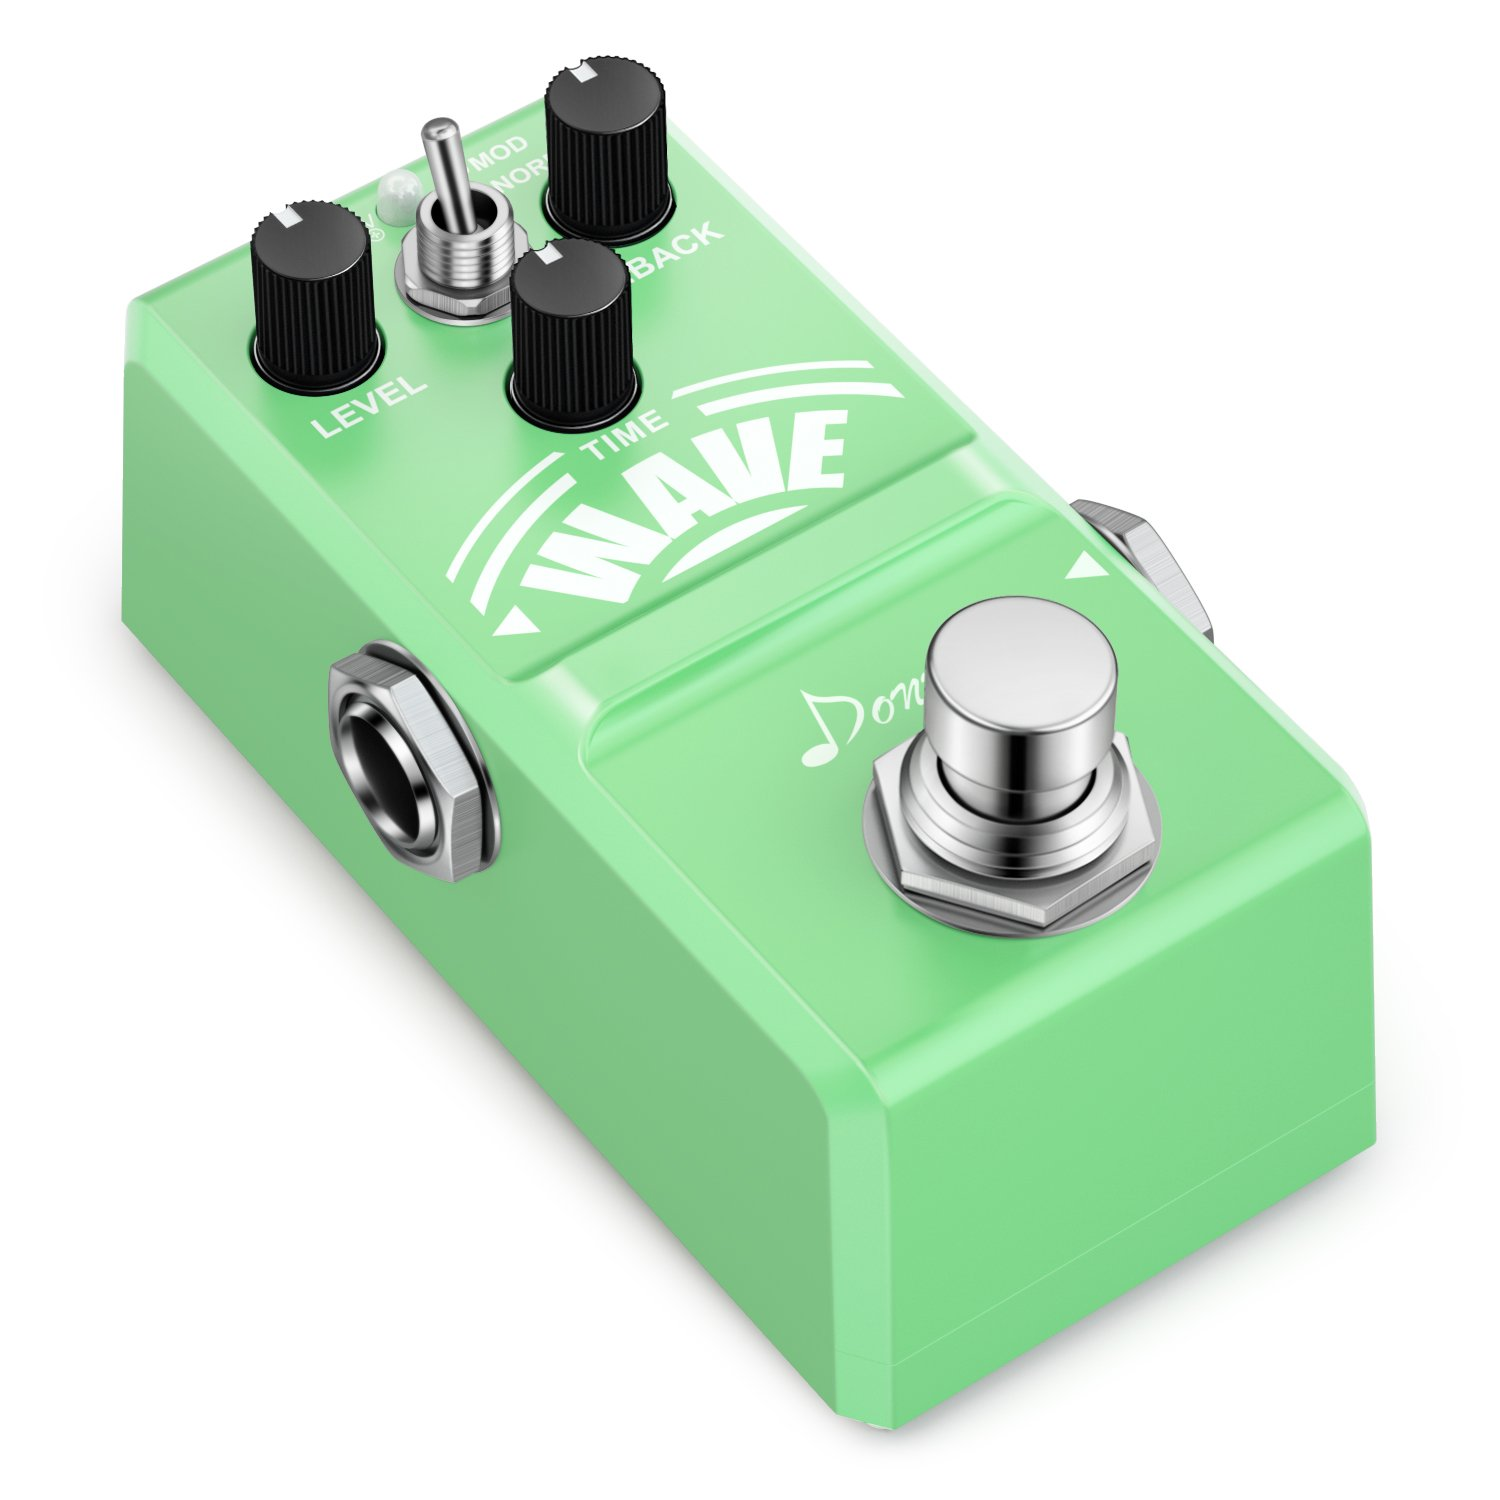 Top 10 Best Donner Guitar Pedals Reviews in 2020 6